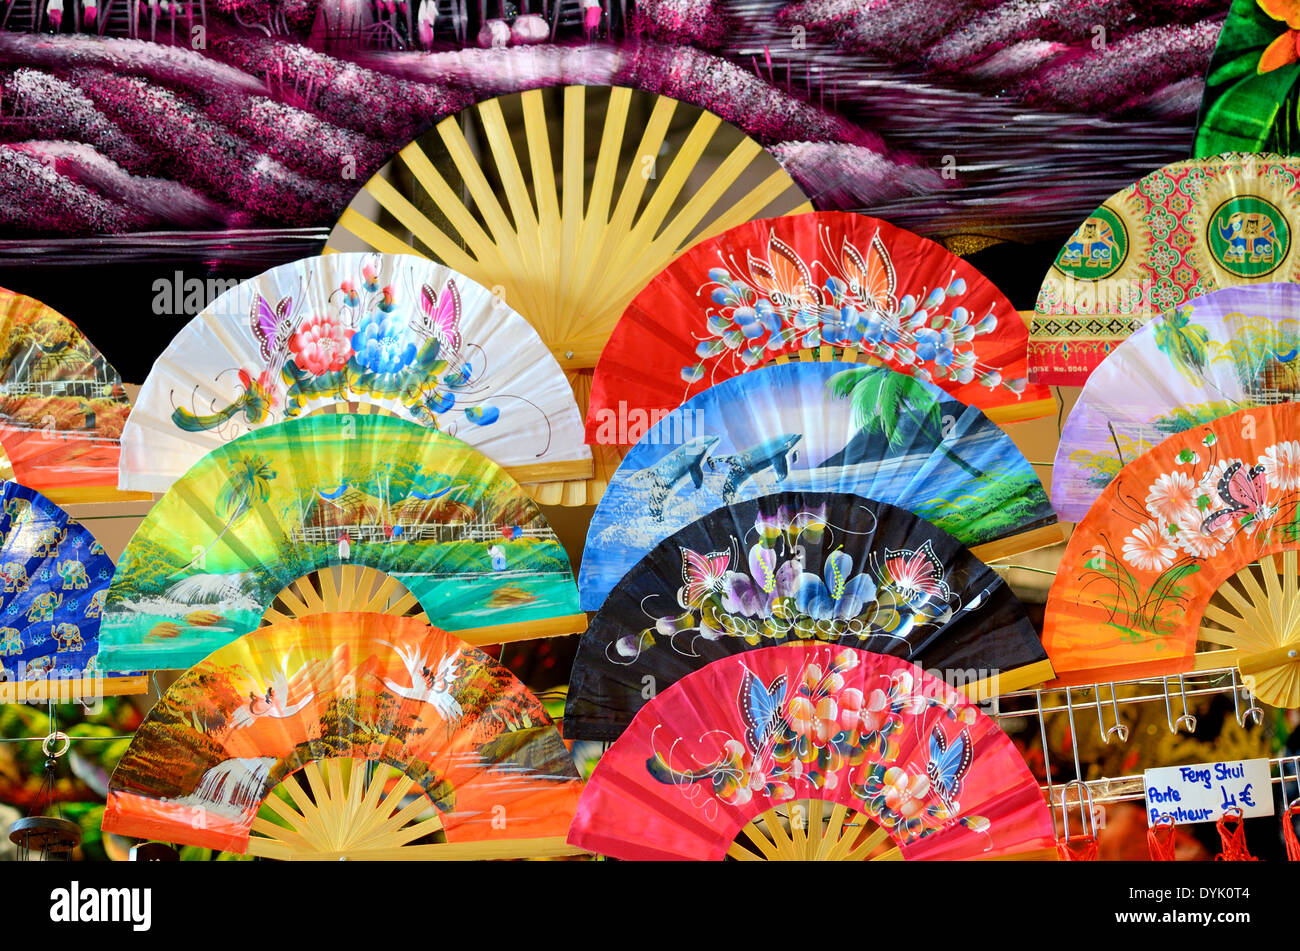 2c9f8a881a329 Paper or Display of Chinese Paper and Bamboo Fans - Stock Image